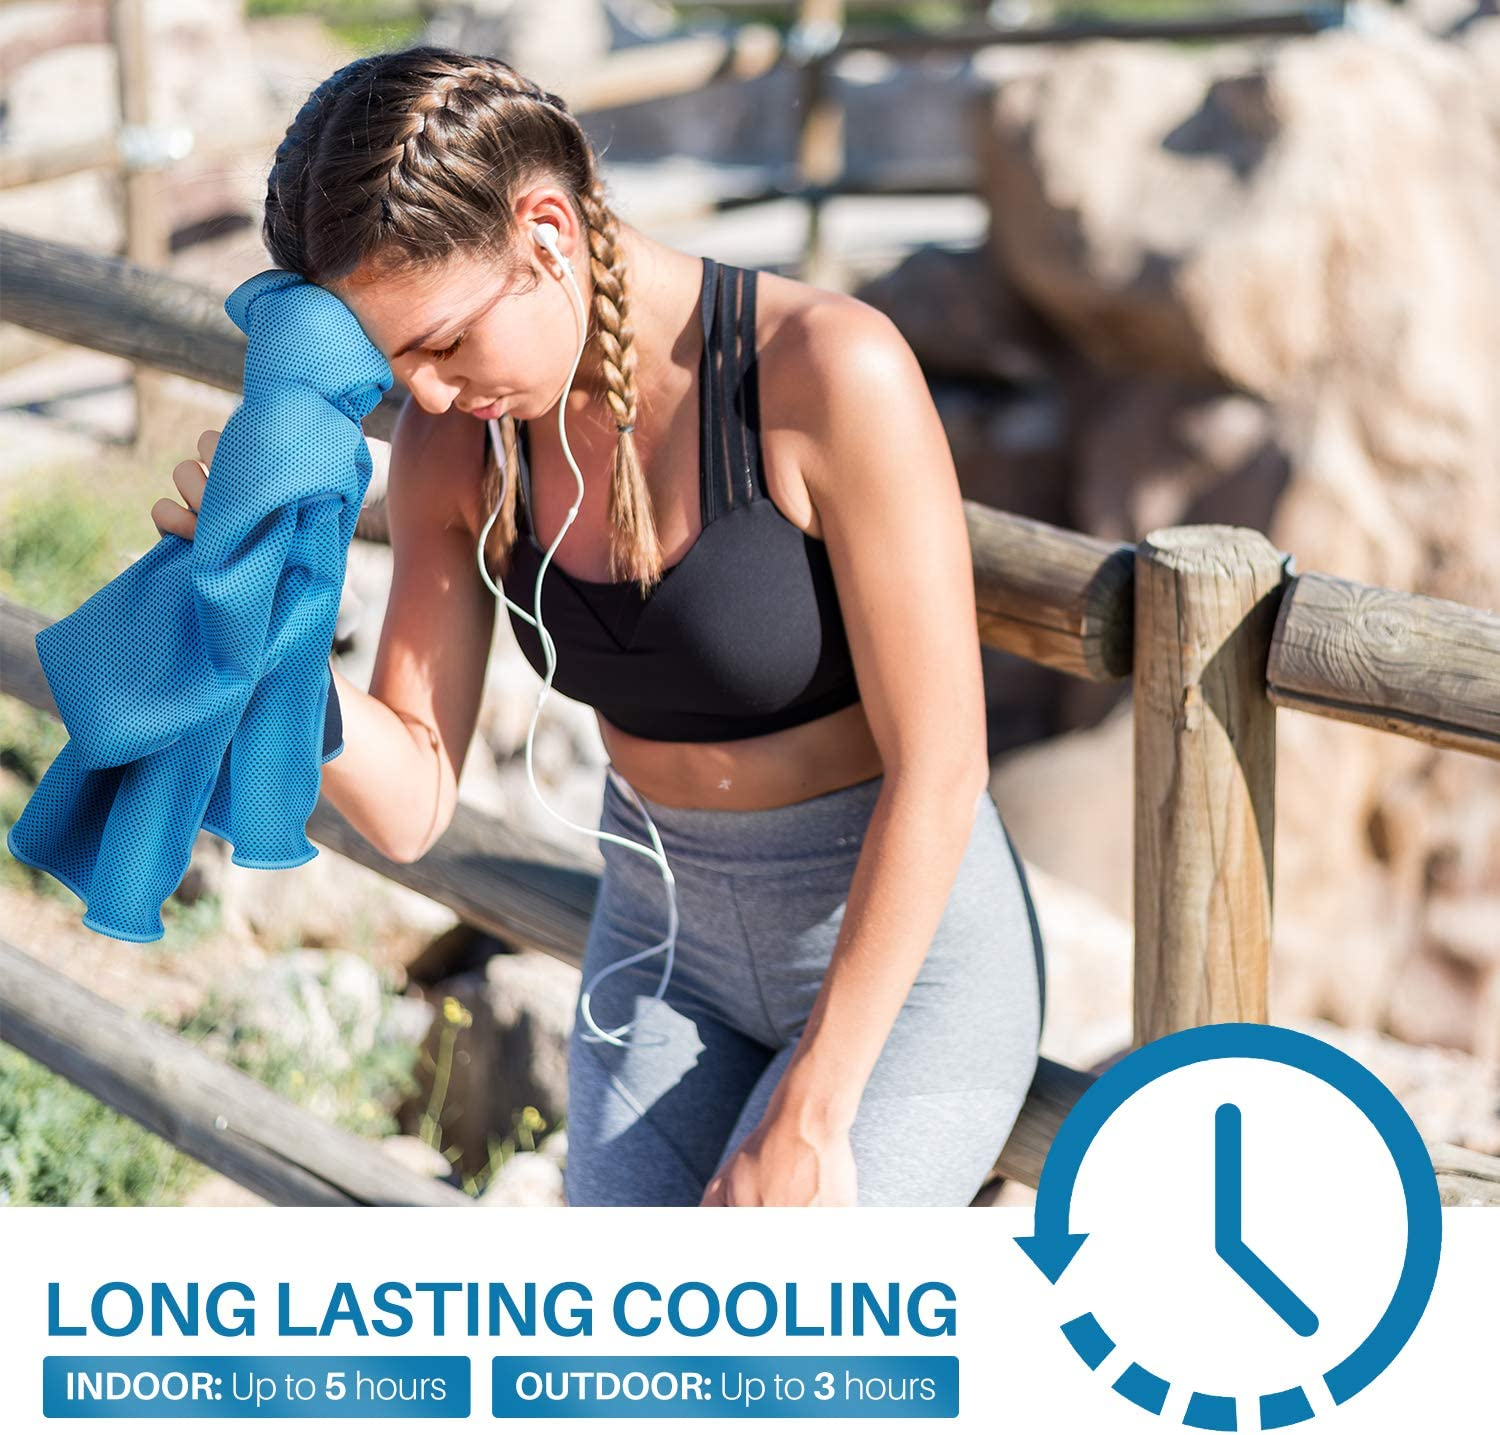 Liberlupus Cooling /& Drying Towel Set Instant Cooling Towel Lasting for Up to 5 Hours Ideal for Gym Super Soft Breathable Absorbent Camping Travel Yoga Quick Dry Microfiber Towel Outdoors